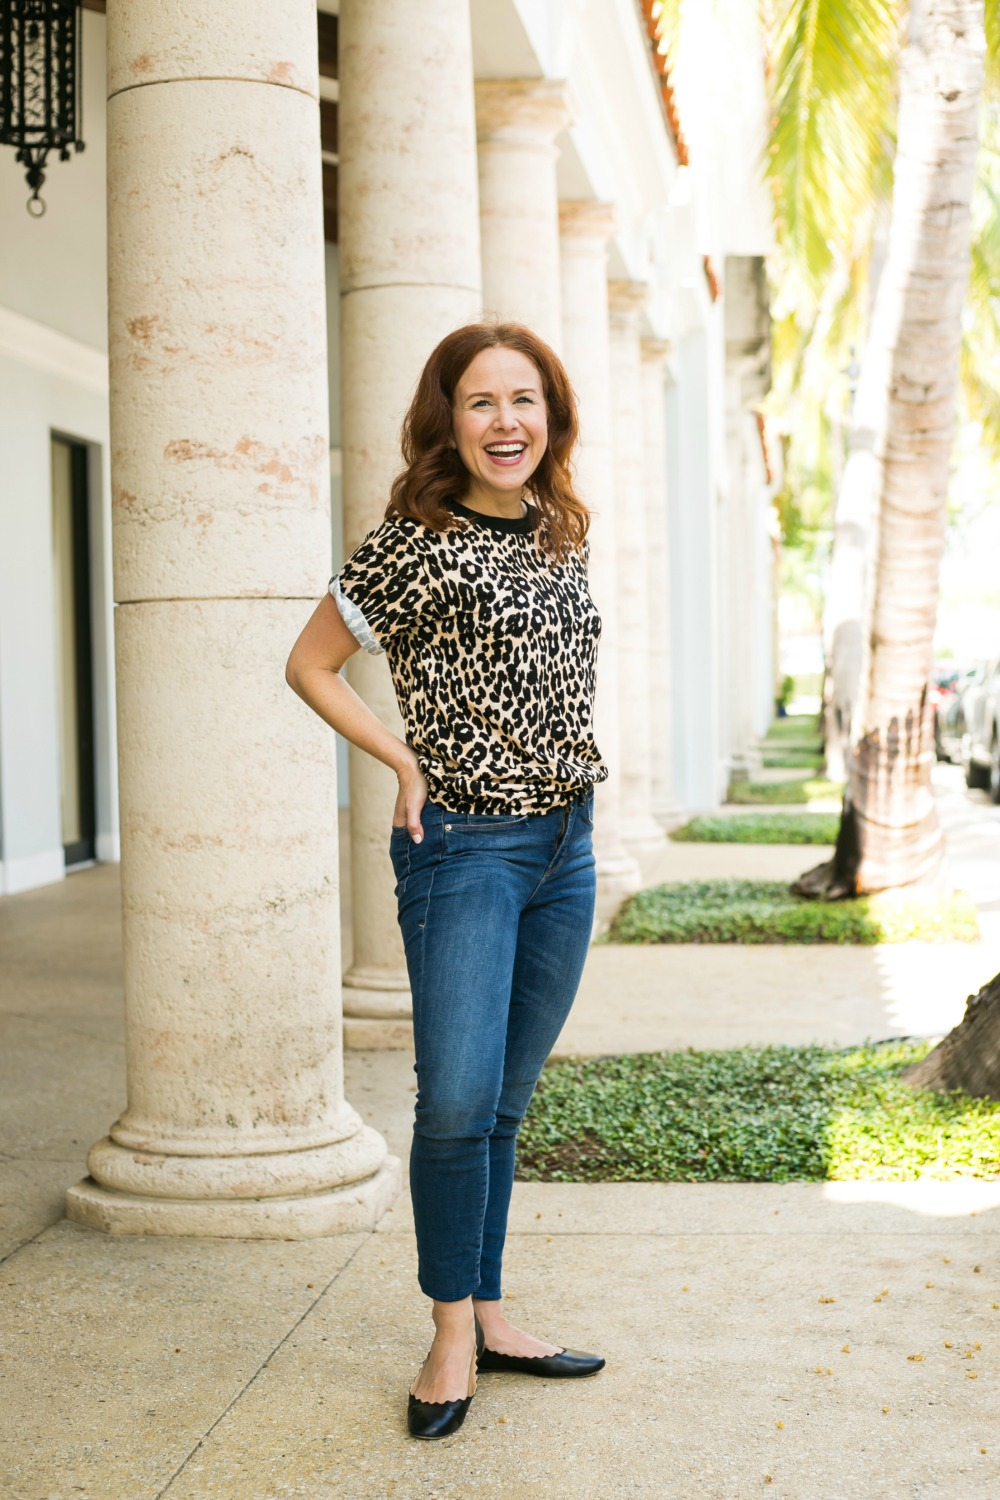 Good American | How real girls can style this fall's biggest trends including leopard | Fall Trends in Warm Weather: Leopard featured by popular Florida life and style blogger The Modern Savvy